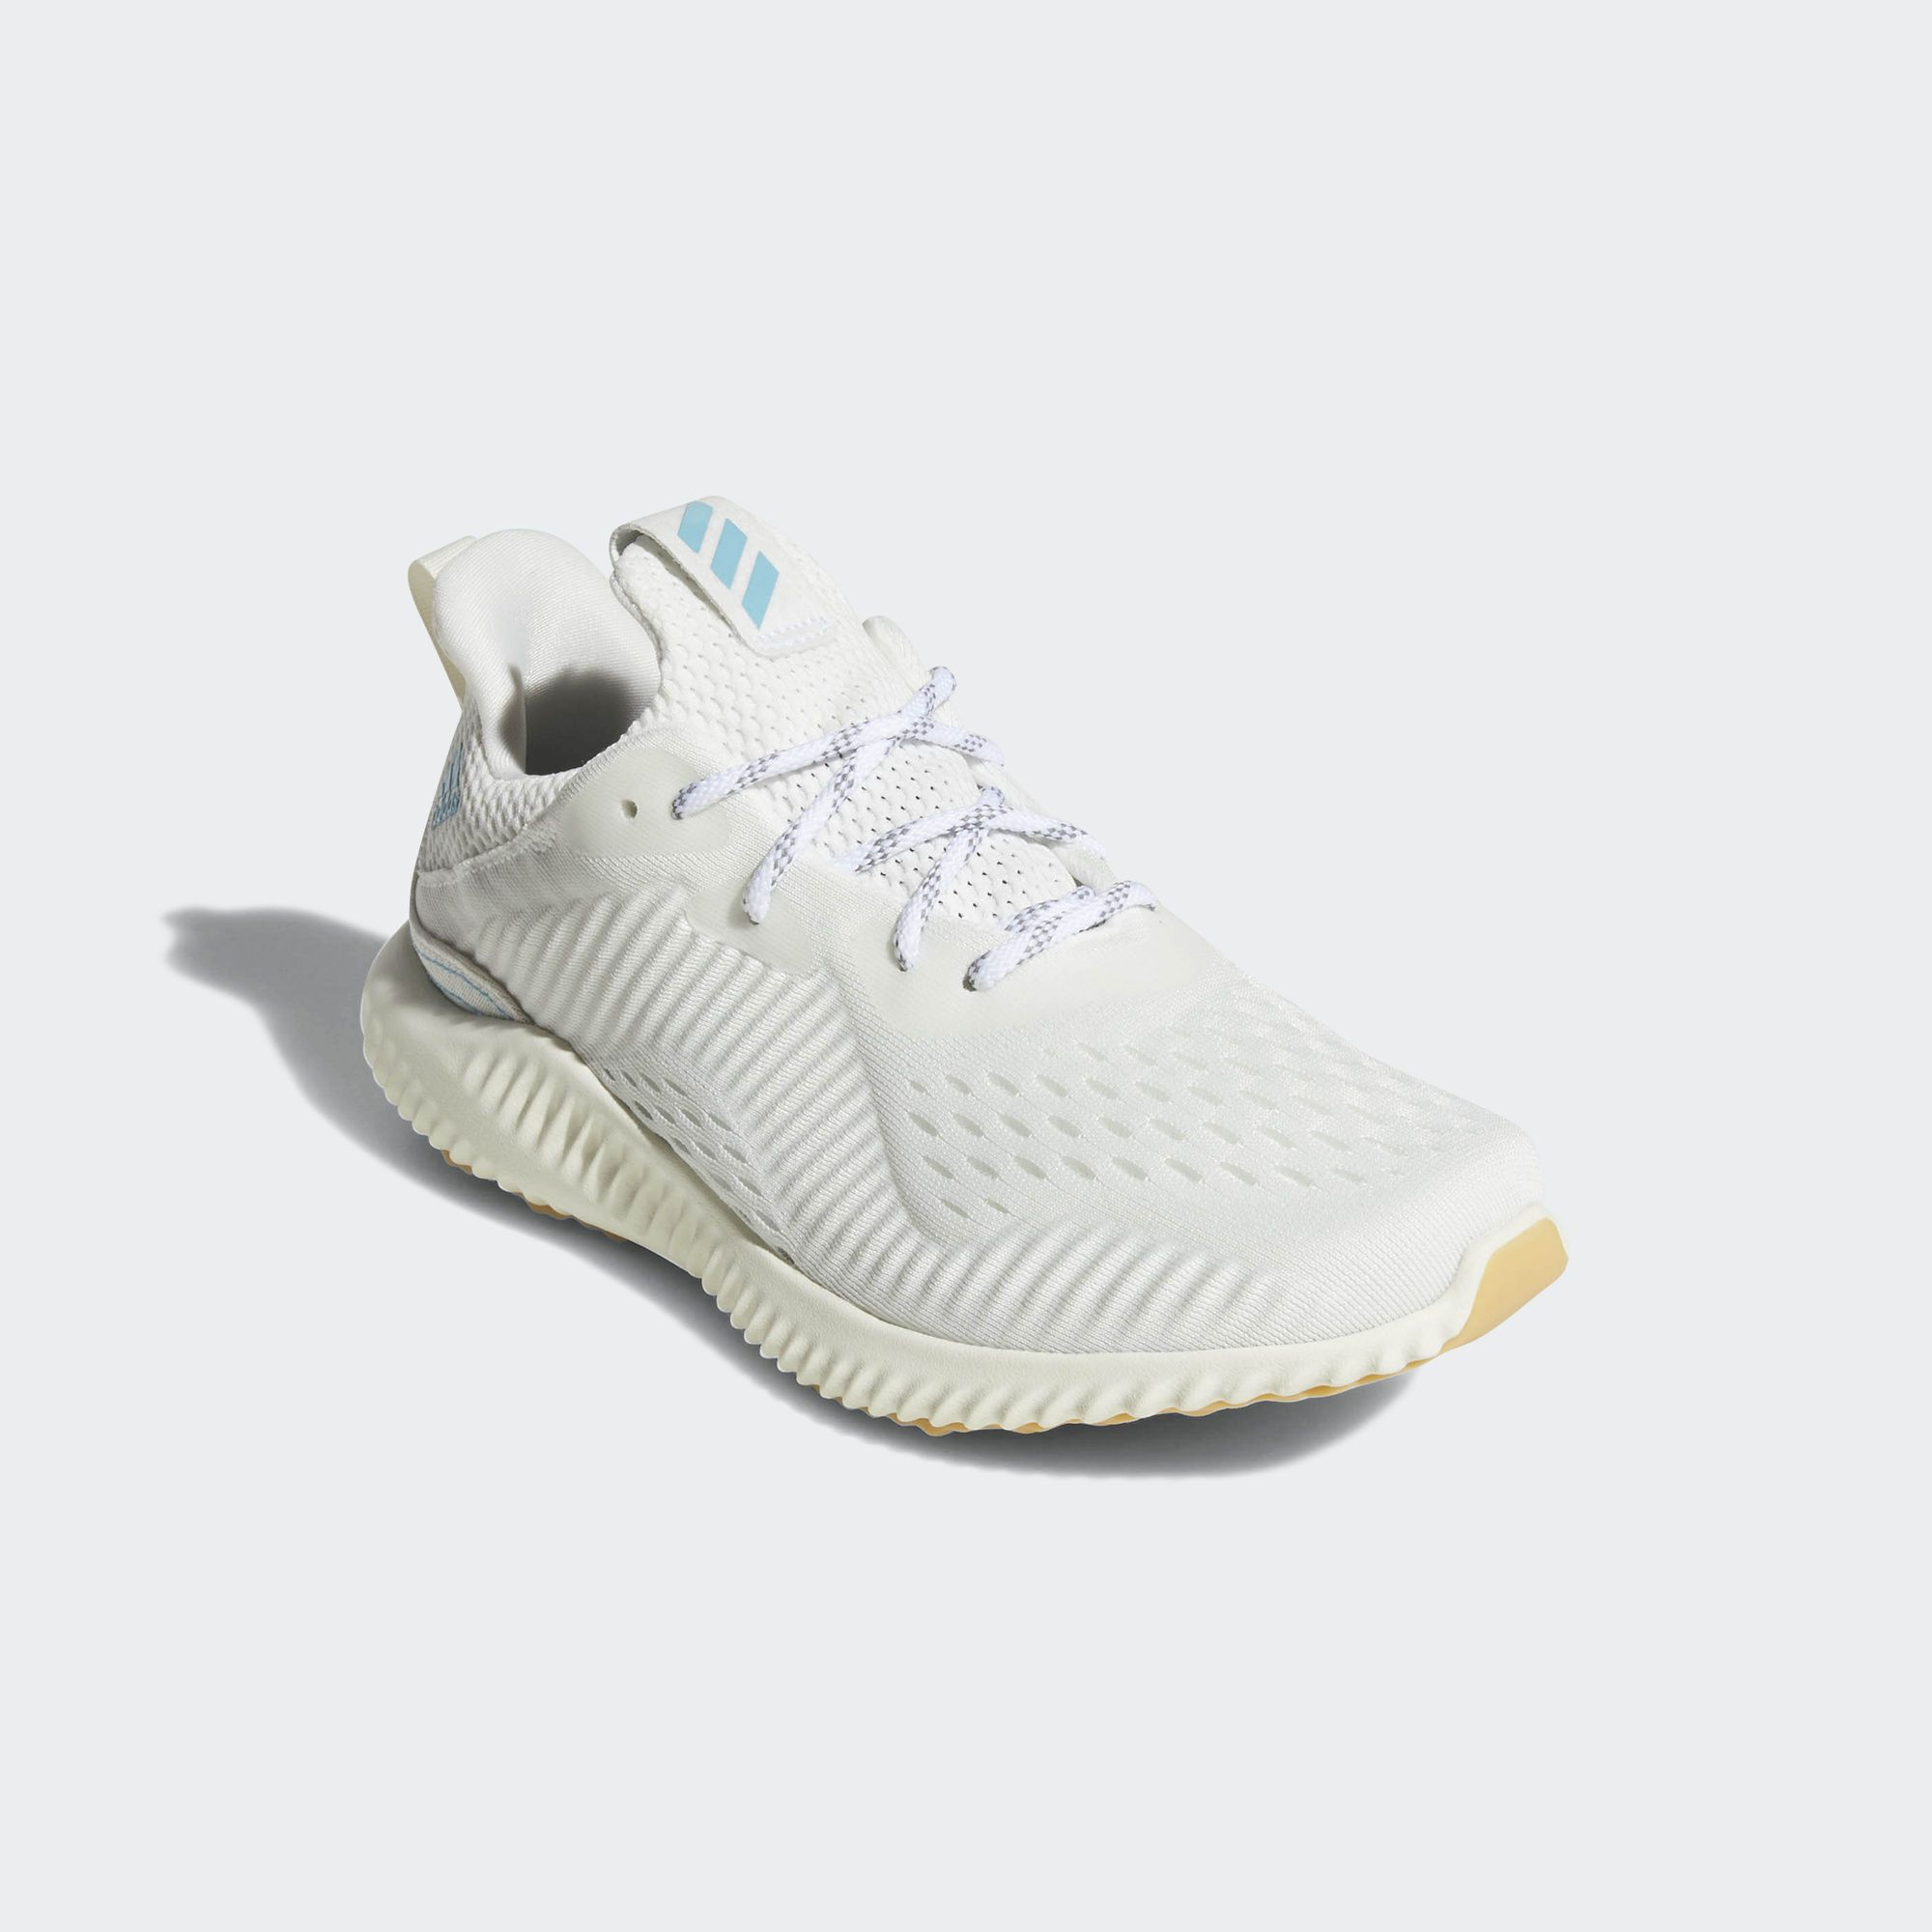 adidas Women's Alphabounce 1 Parley Shoes - Blue | adidas Canada